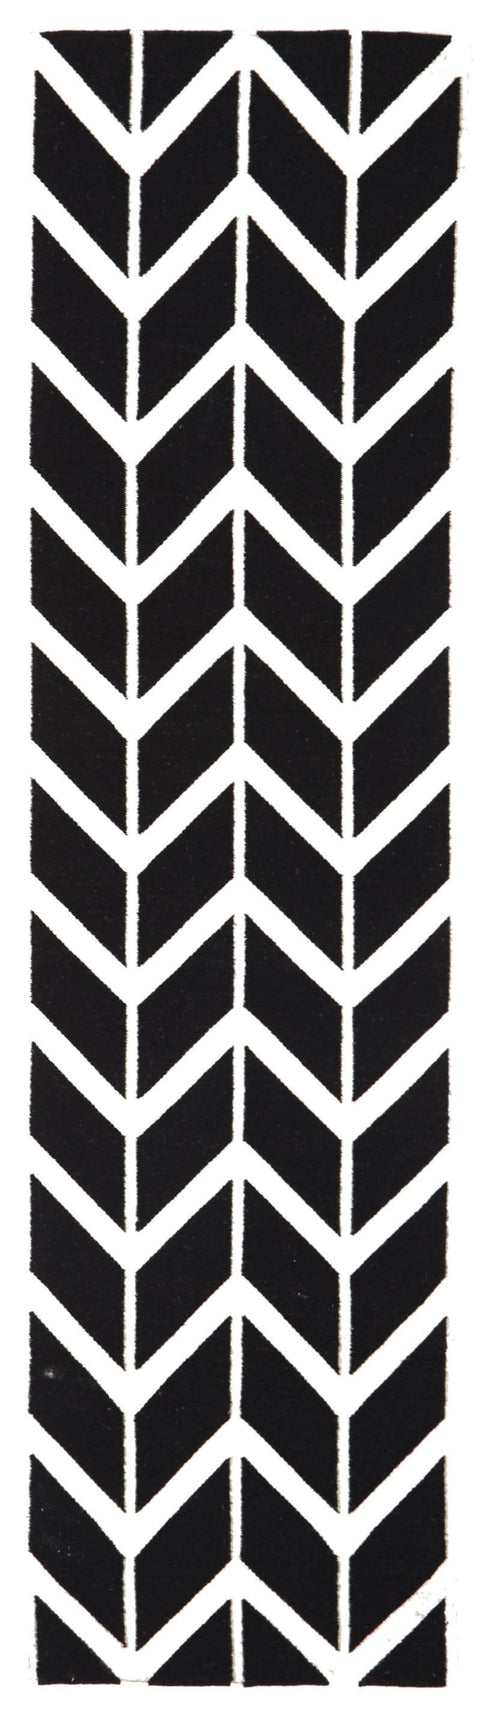 Svalbard Black & White Arrow Wool Runner Rug